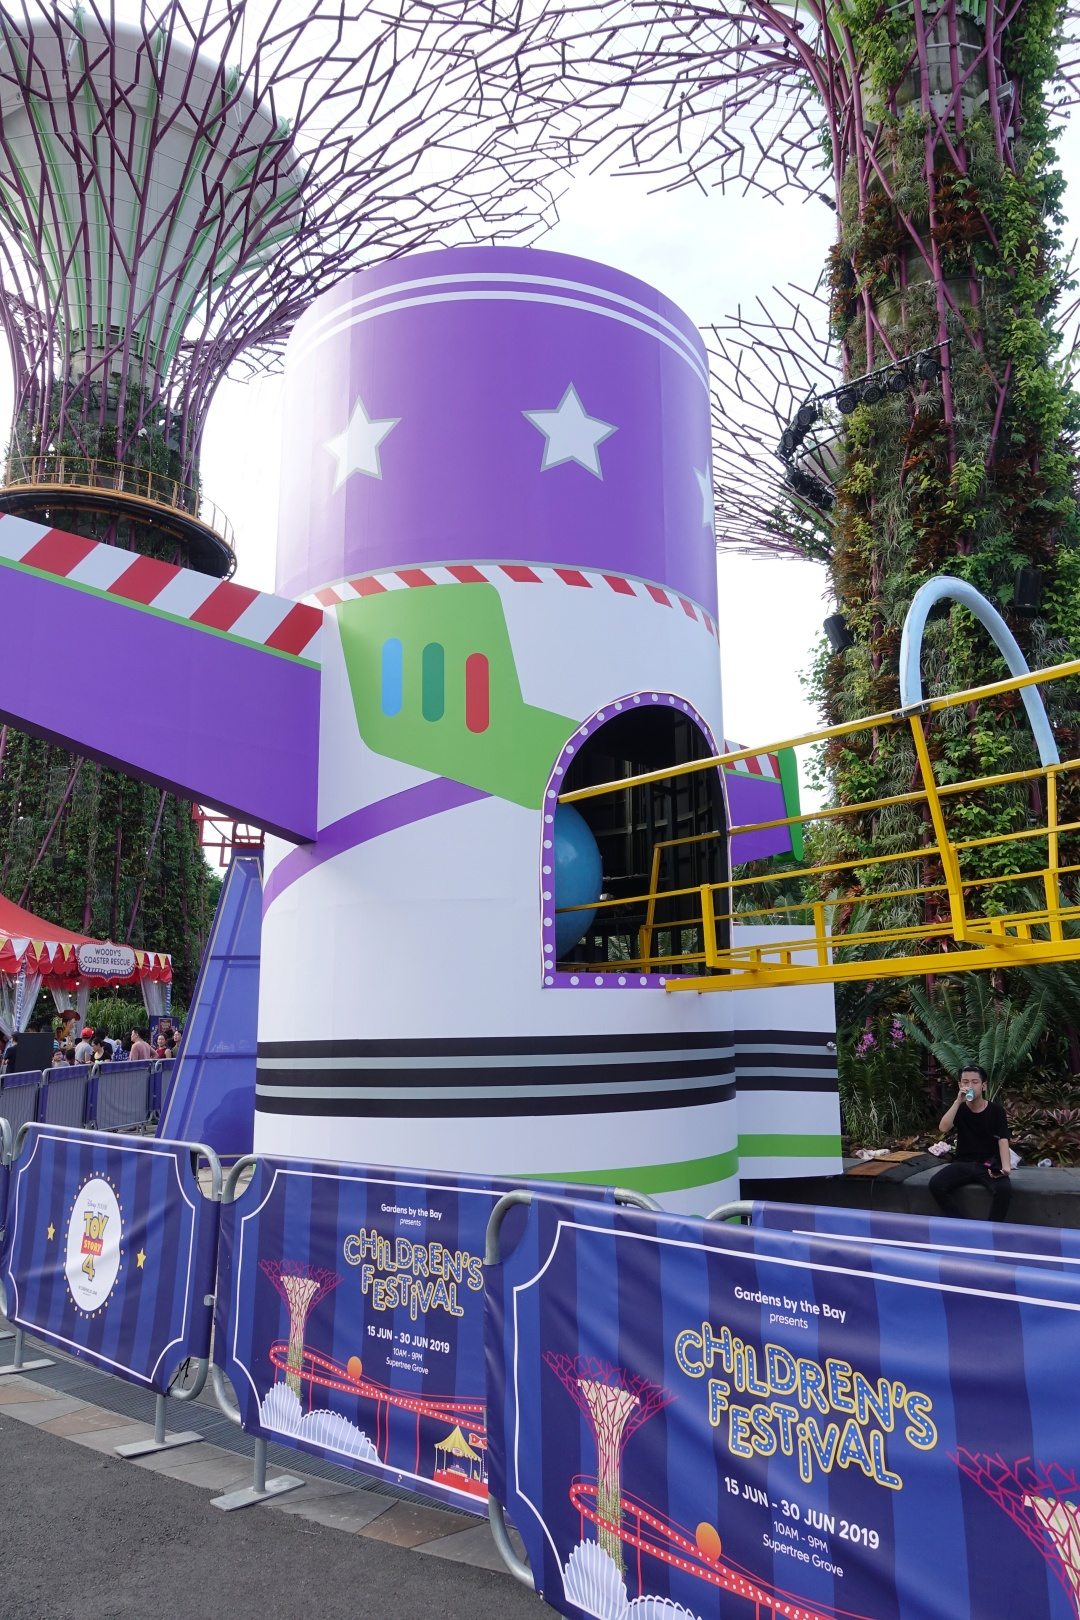 Disney and Pixar's Toy Story 4 themed Marble Run   Children's Festival at Gardens by the Bay   joanne-khoo.com